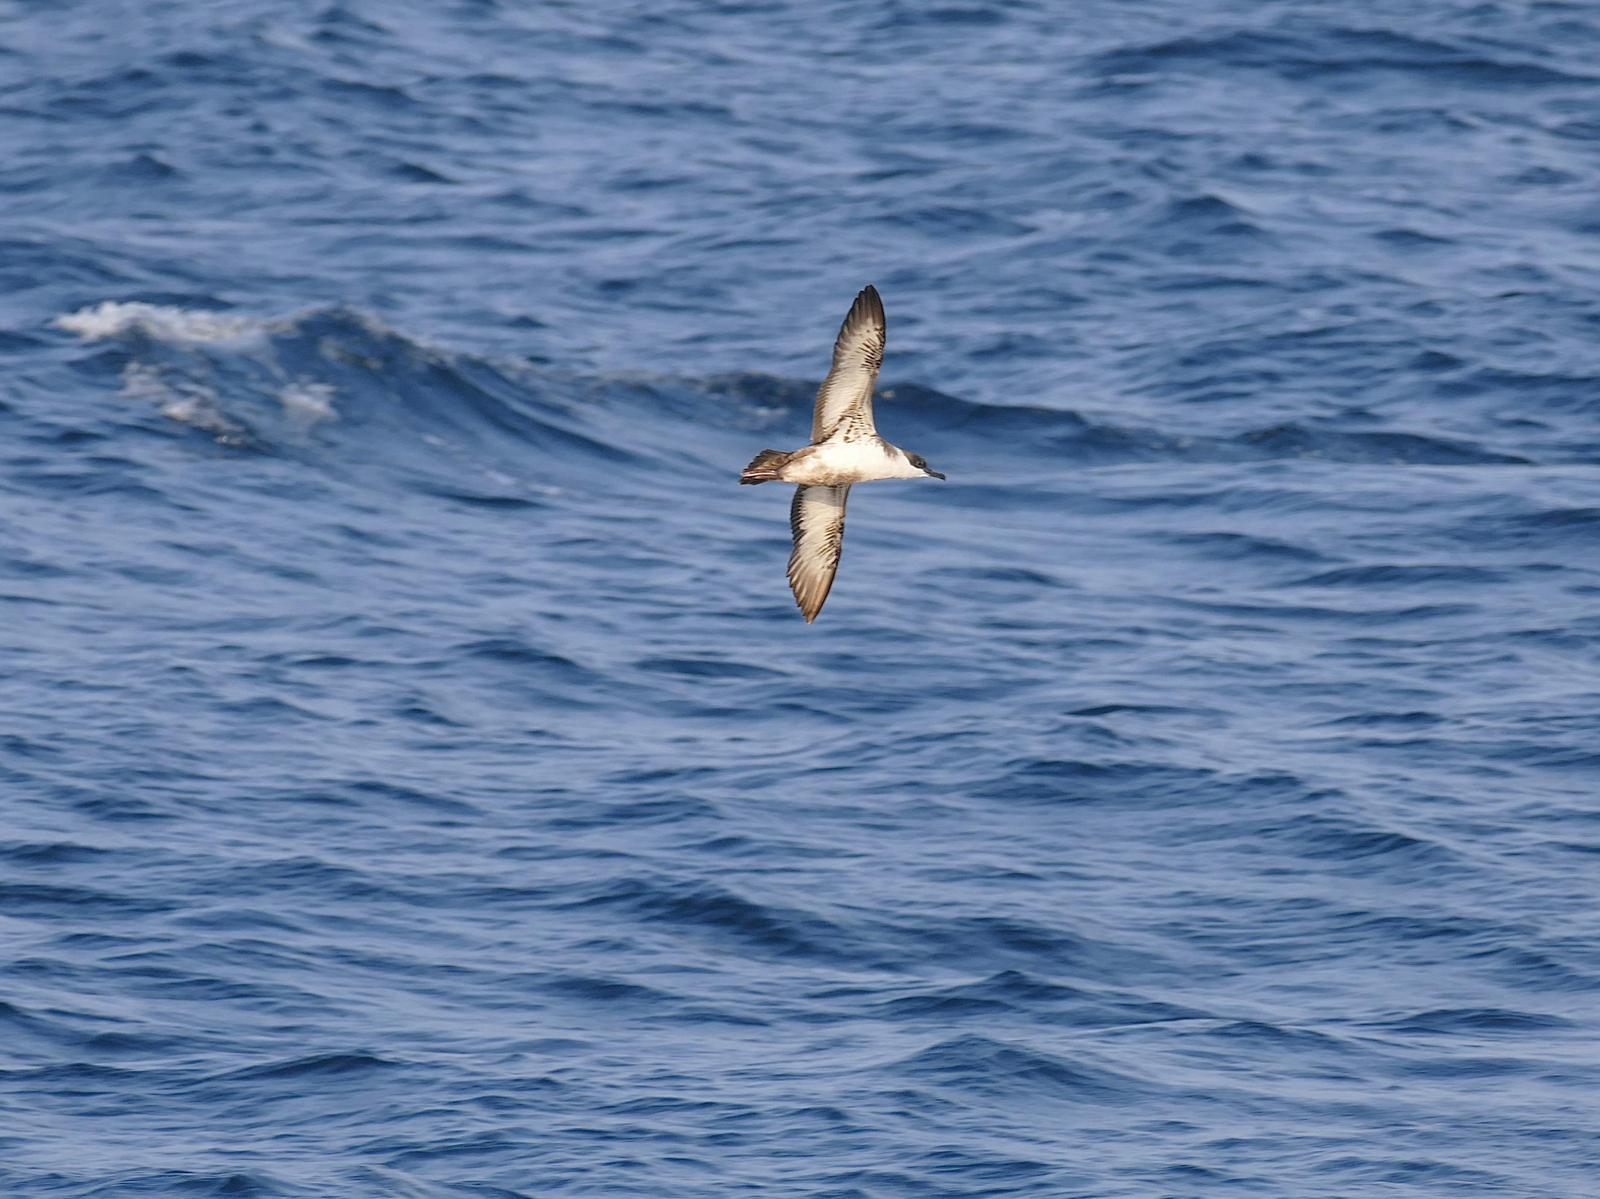 Great Shearwater Photo by Drew Weber